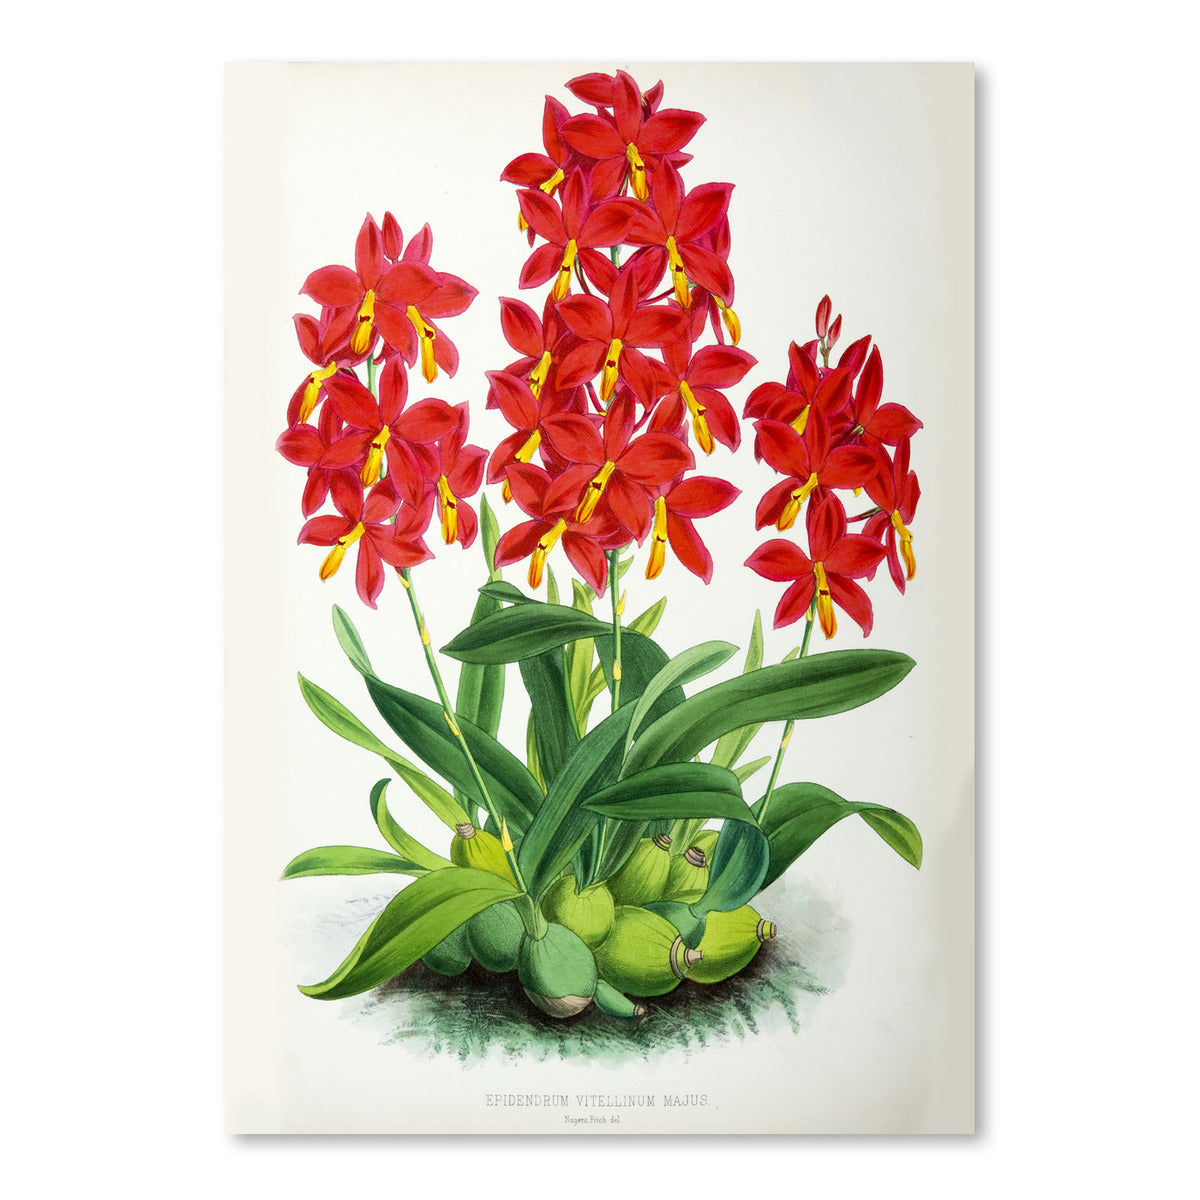 Fitch Orchid Epidendrum Vitellinummajus by New York Botanical Garden Art Print - Art Print - Americanflat